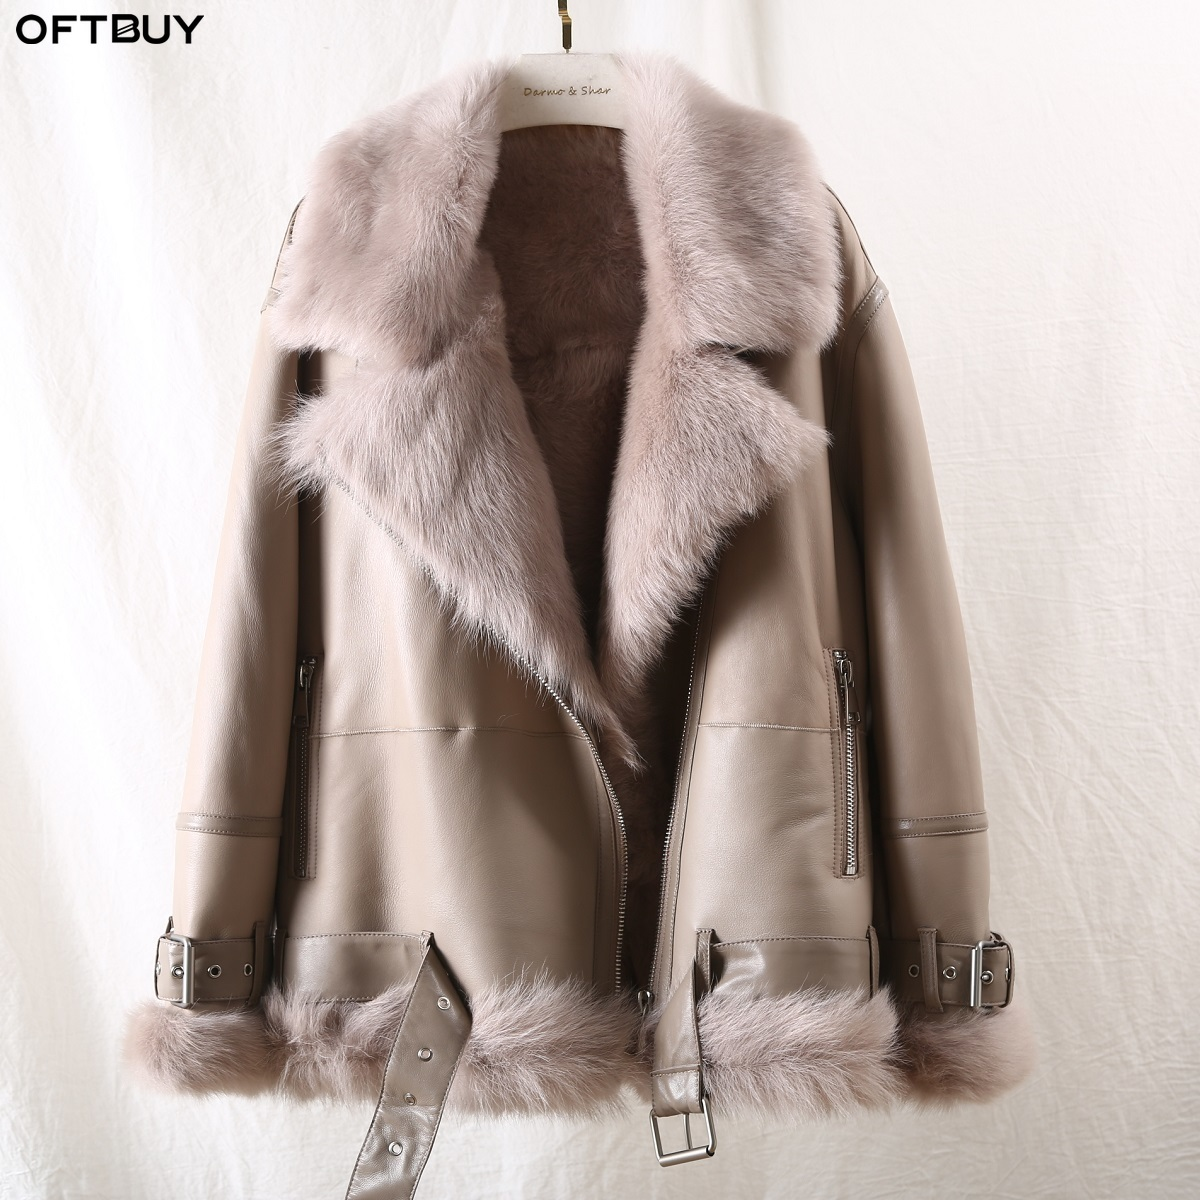 OFTBUY 2019 Winter Jacket Women Double-faced Fur Coat Female Genuine Leather Thick Warm Real Wool Fur Liner Outewear Streetwear